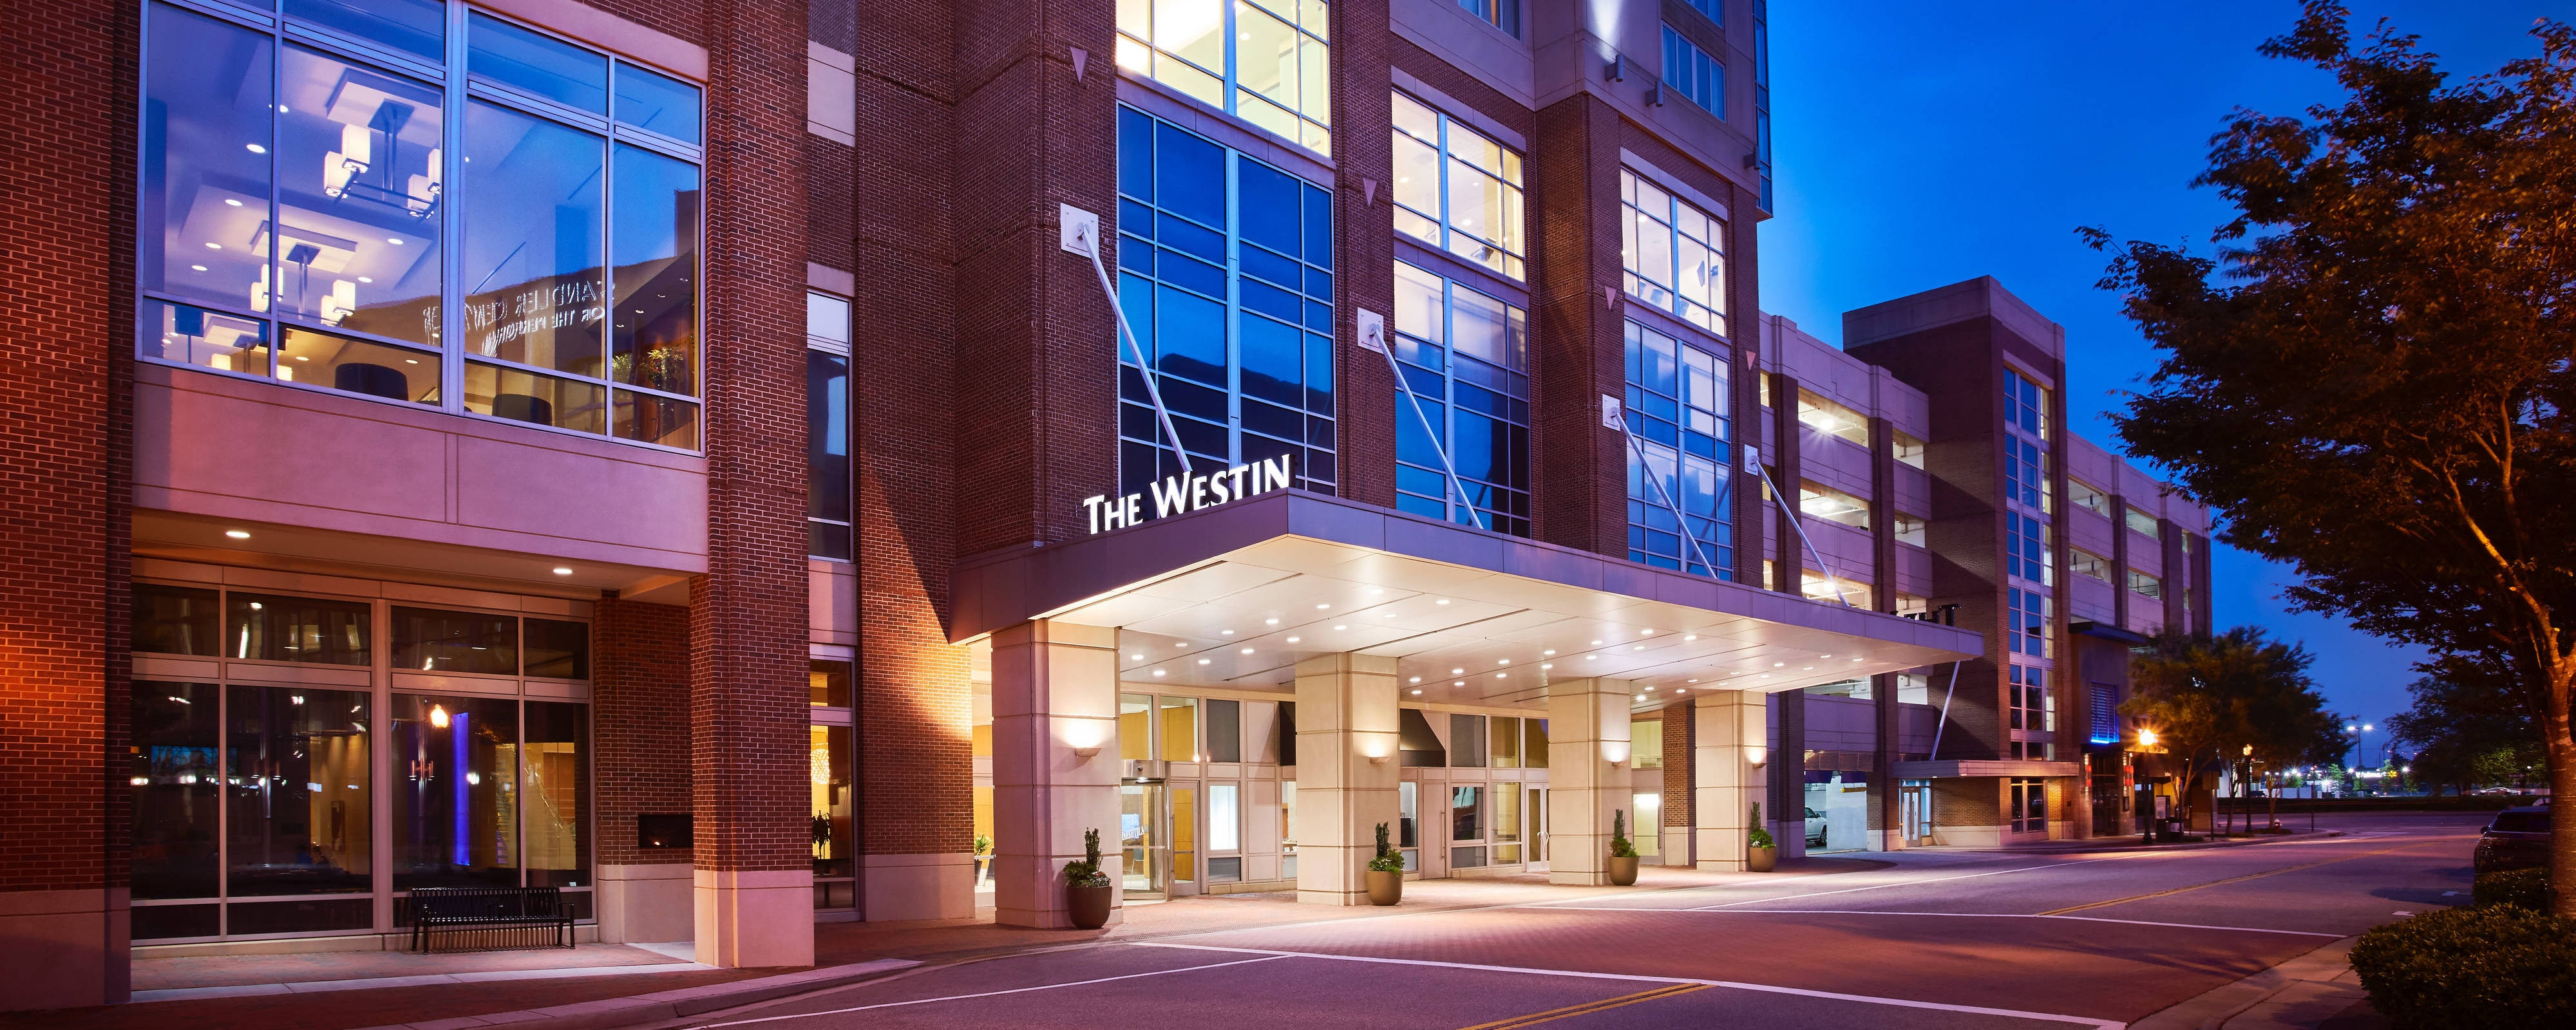 Hotels in Virginia Beach, VA | The Westin Virginia Beach Town Center